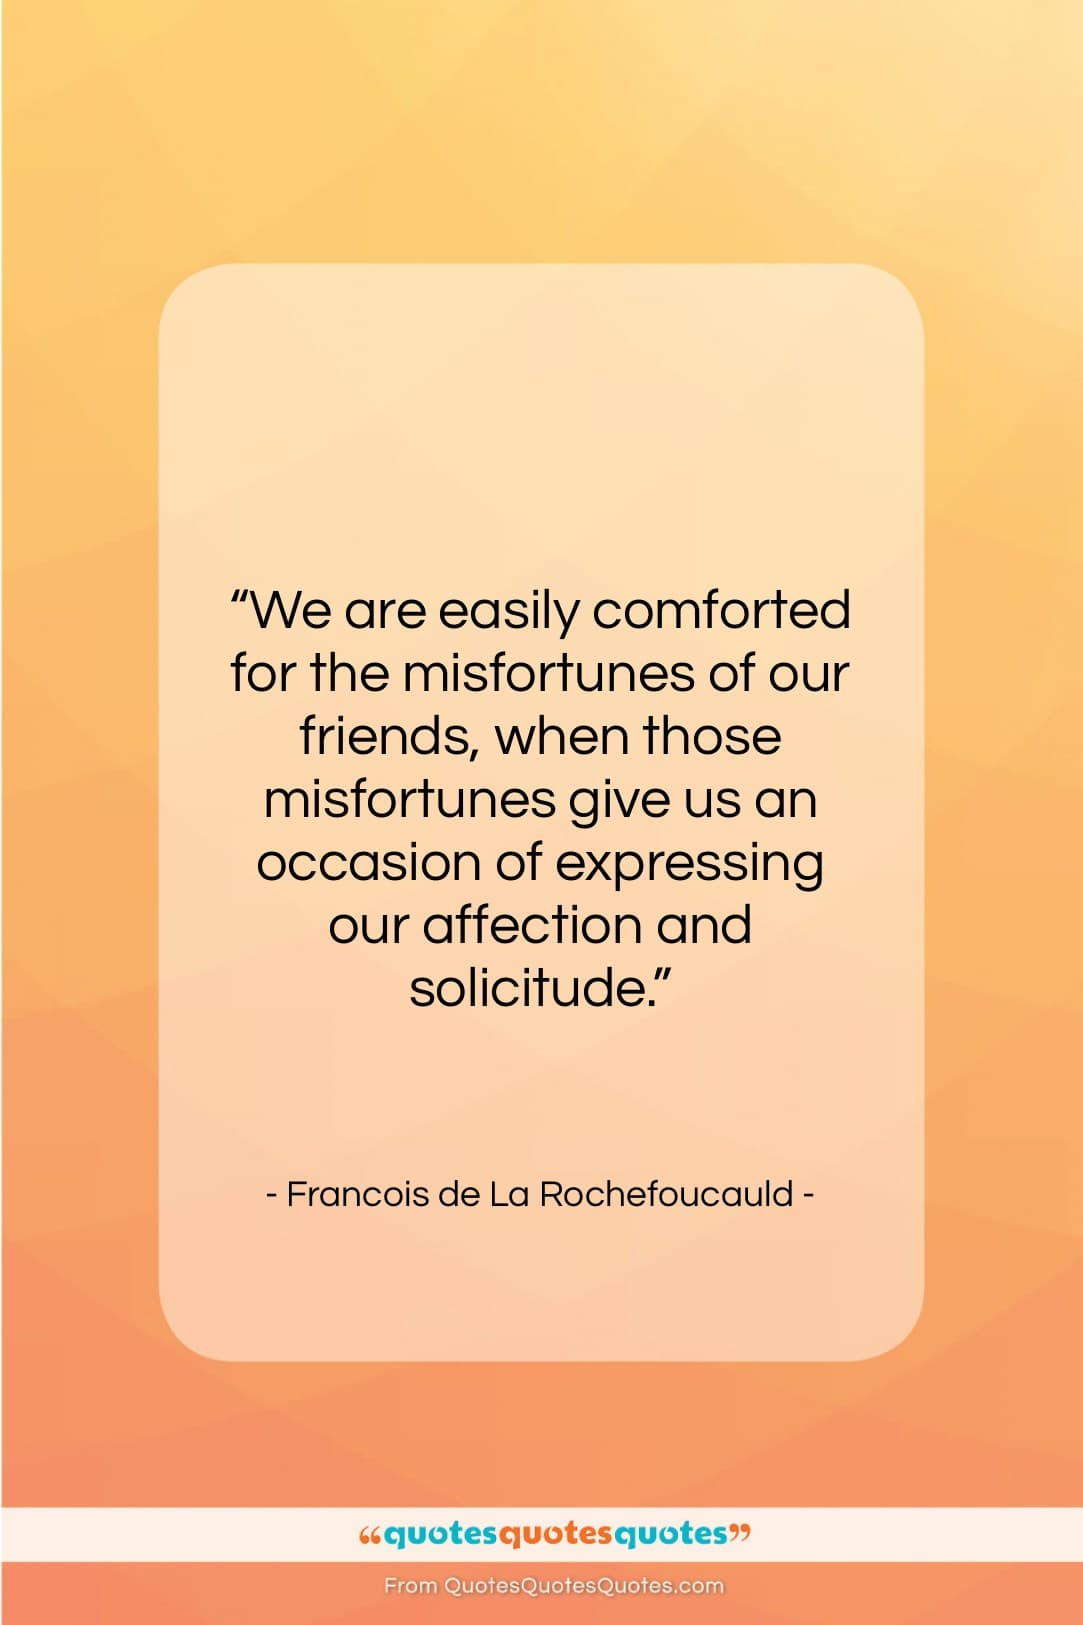 """Francois de La Rochefoucauld quote: """"We are easily comforted for the misfortunes…""""- at QuotesQuotesQuotes.com"""